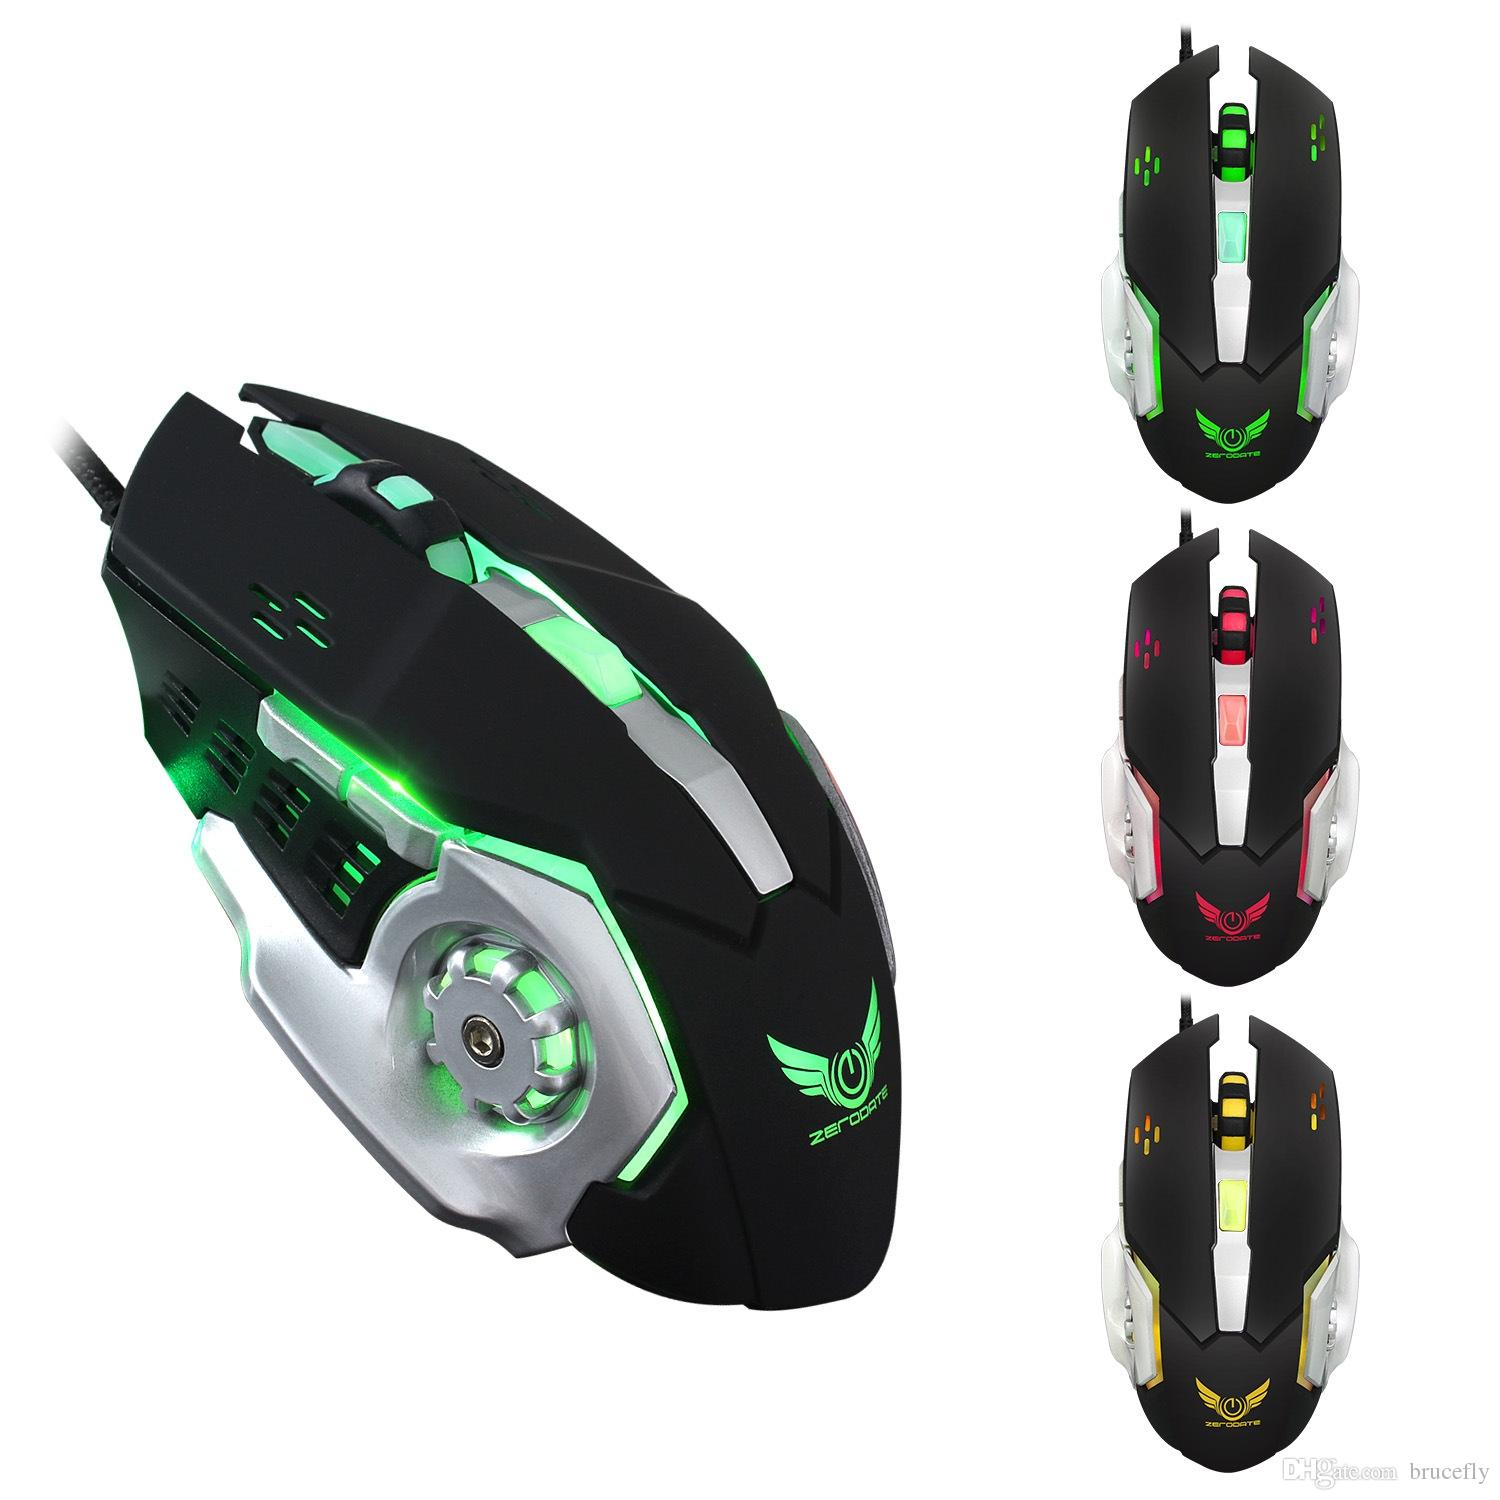 hight resolution of 2018 mechanical mice professional wired gaming mouse 6 button 5500 dpi mice colorful led optical usb computer mouse gamer mice x500 free dhl from brucefly